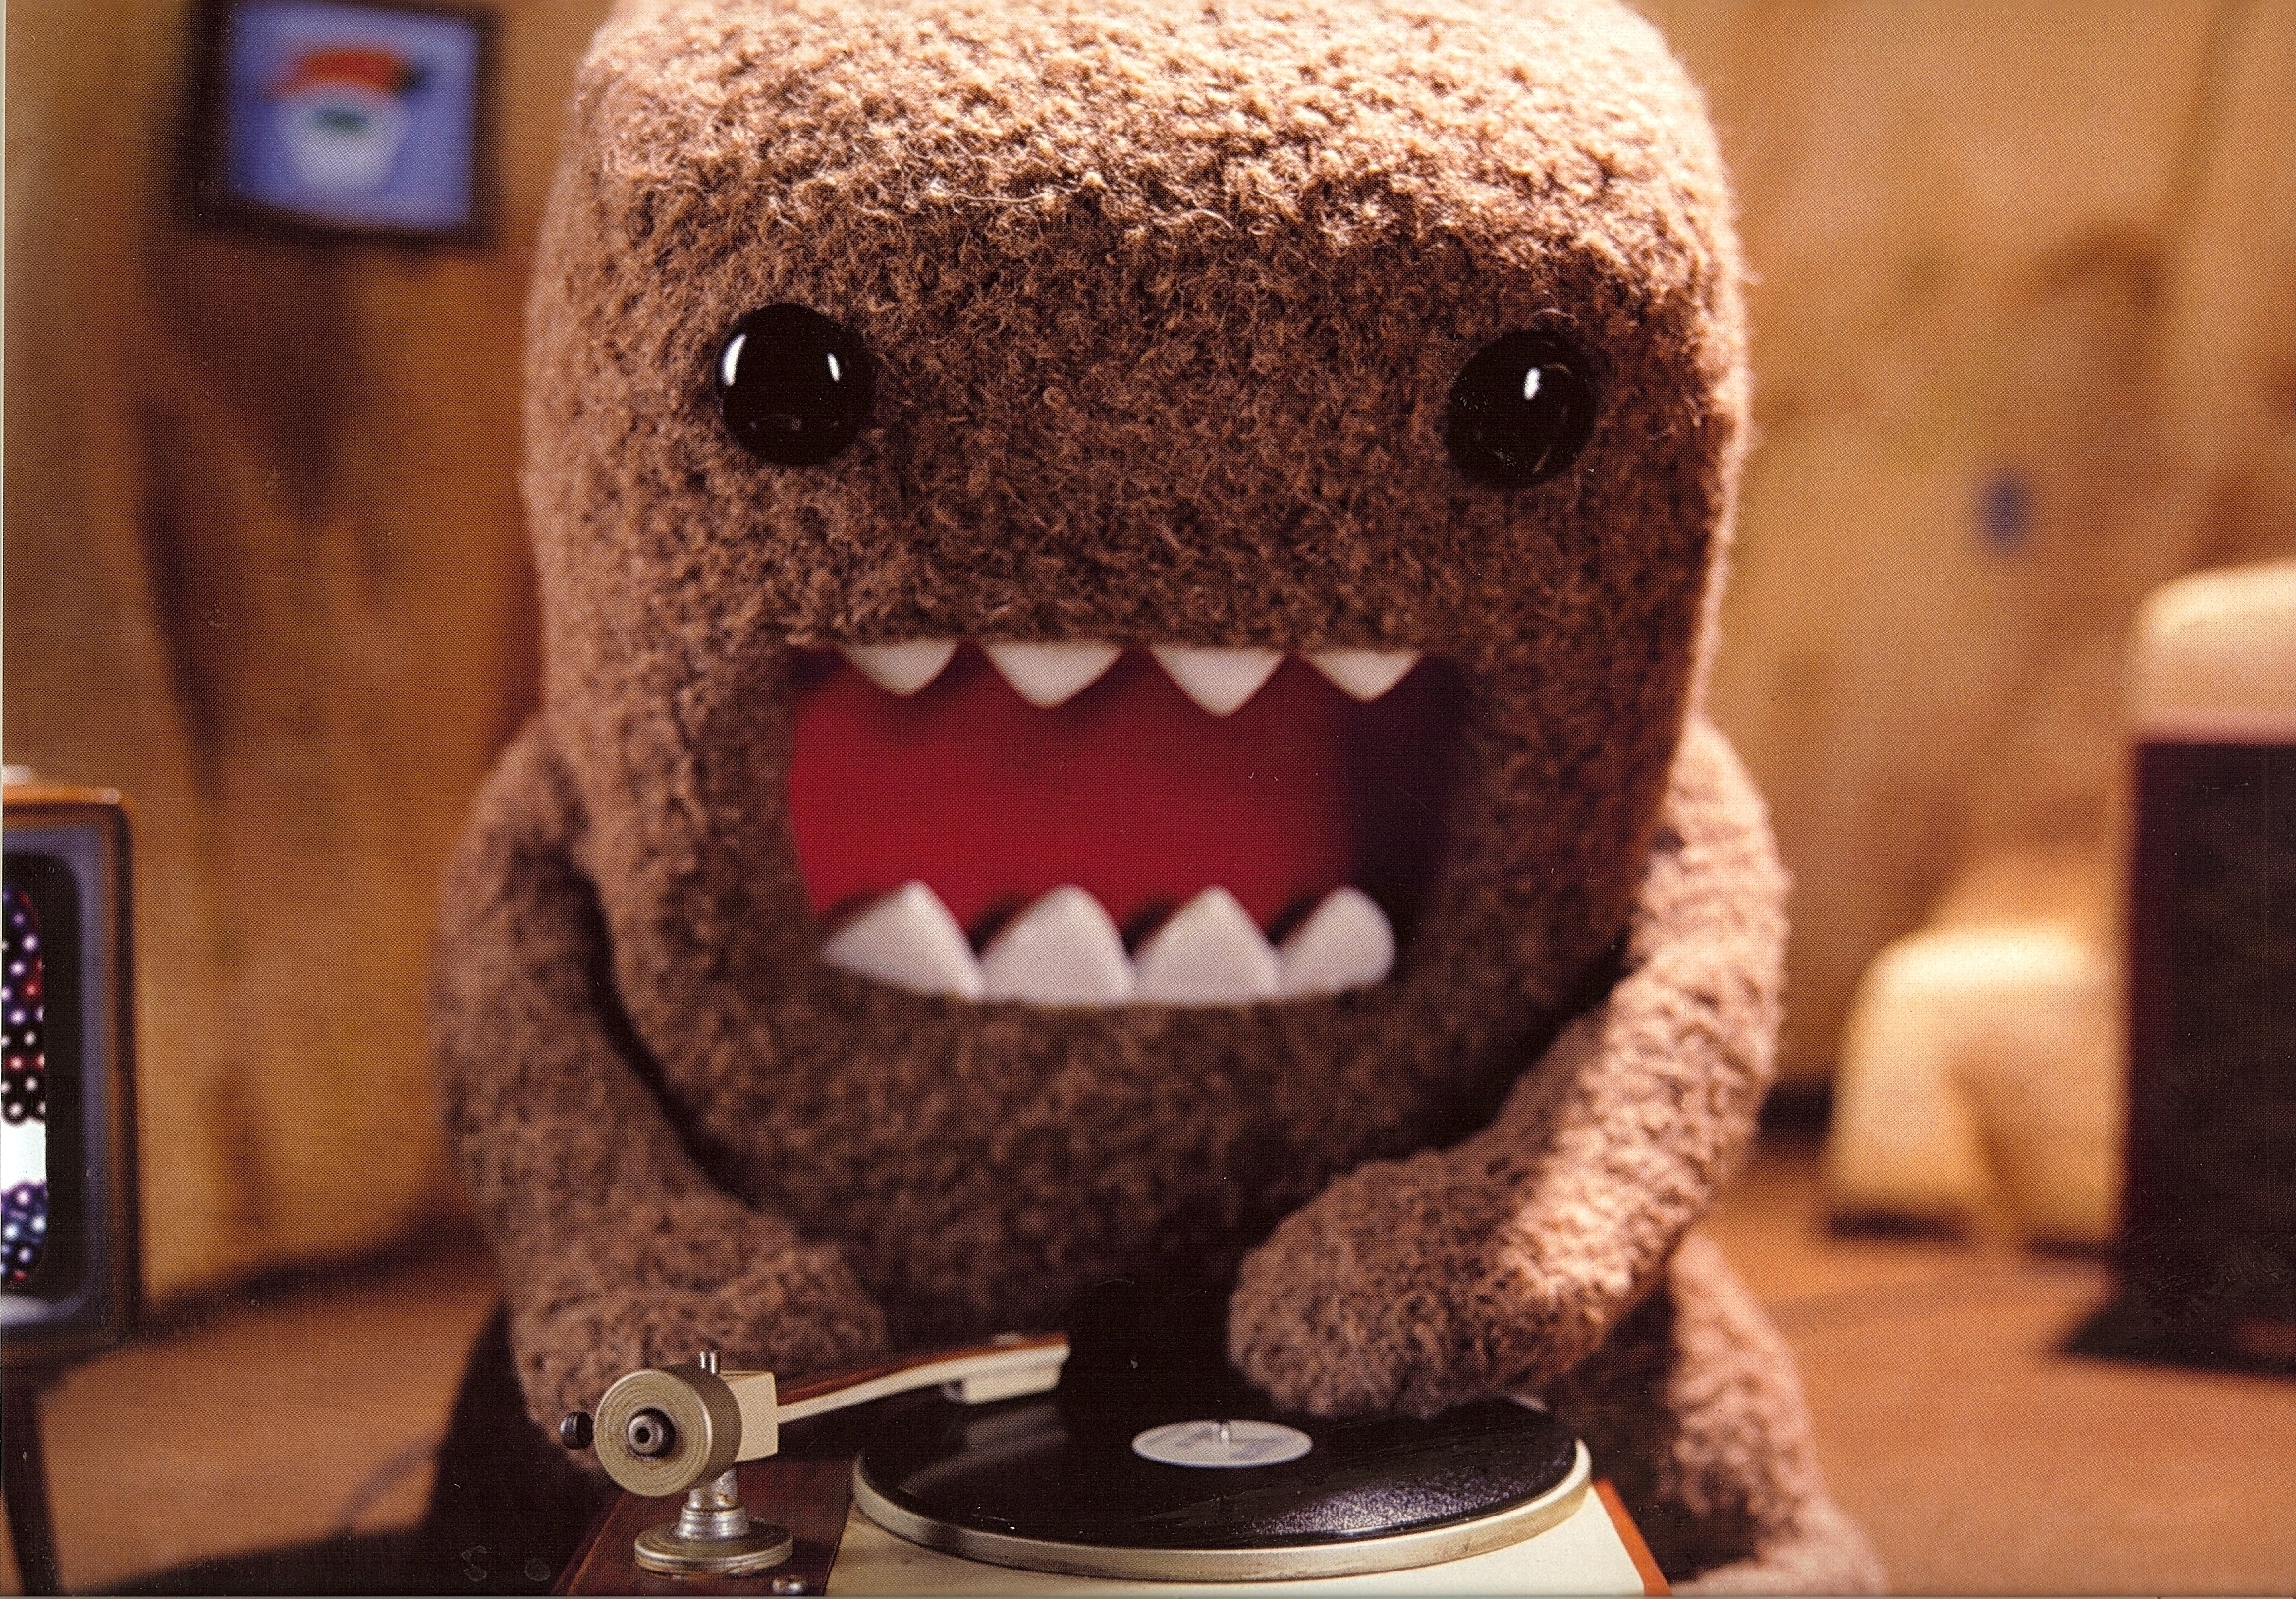 domo kun images domo kun hd wallpaper and background